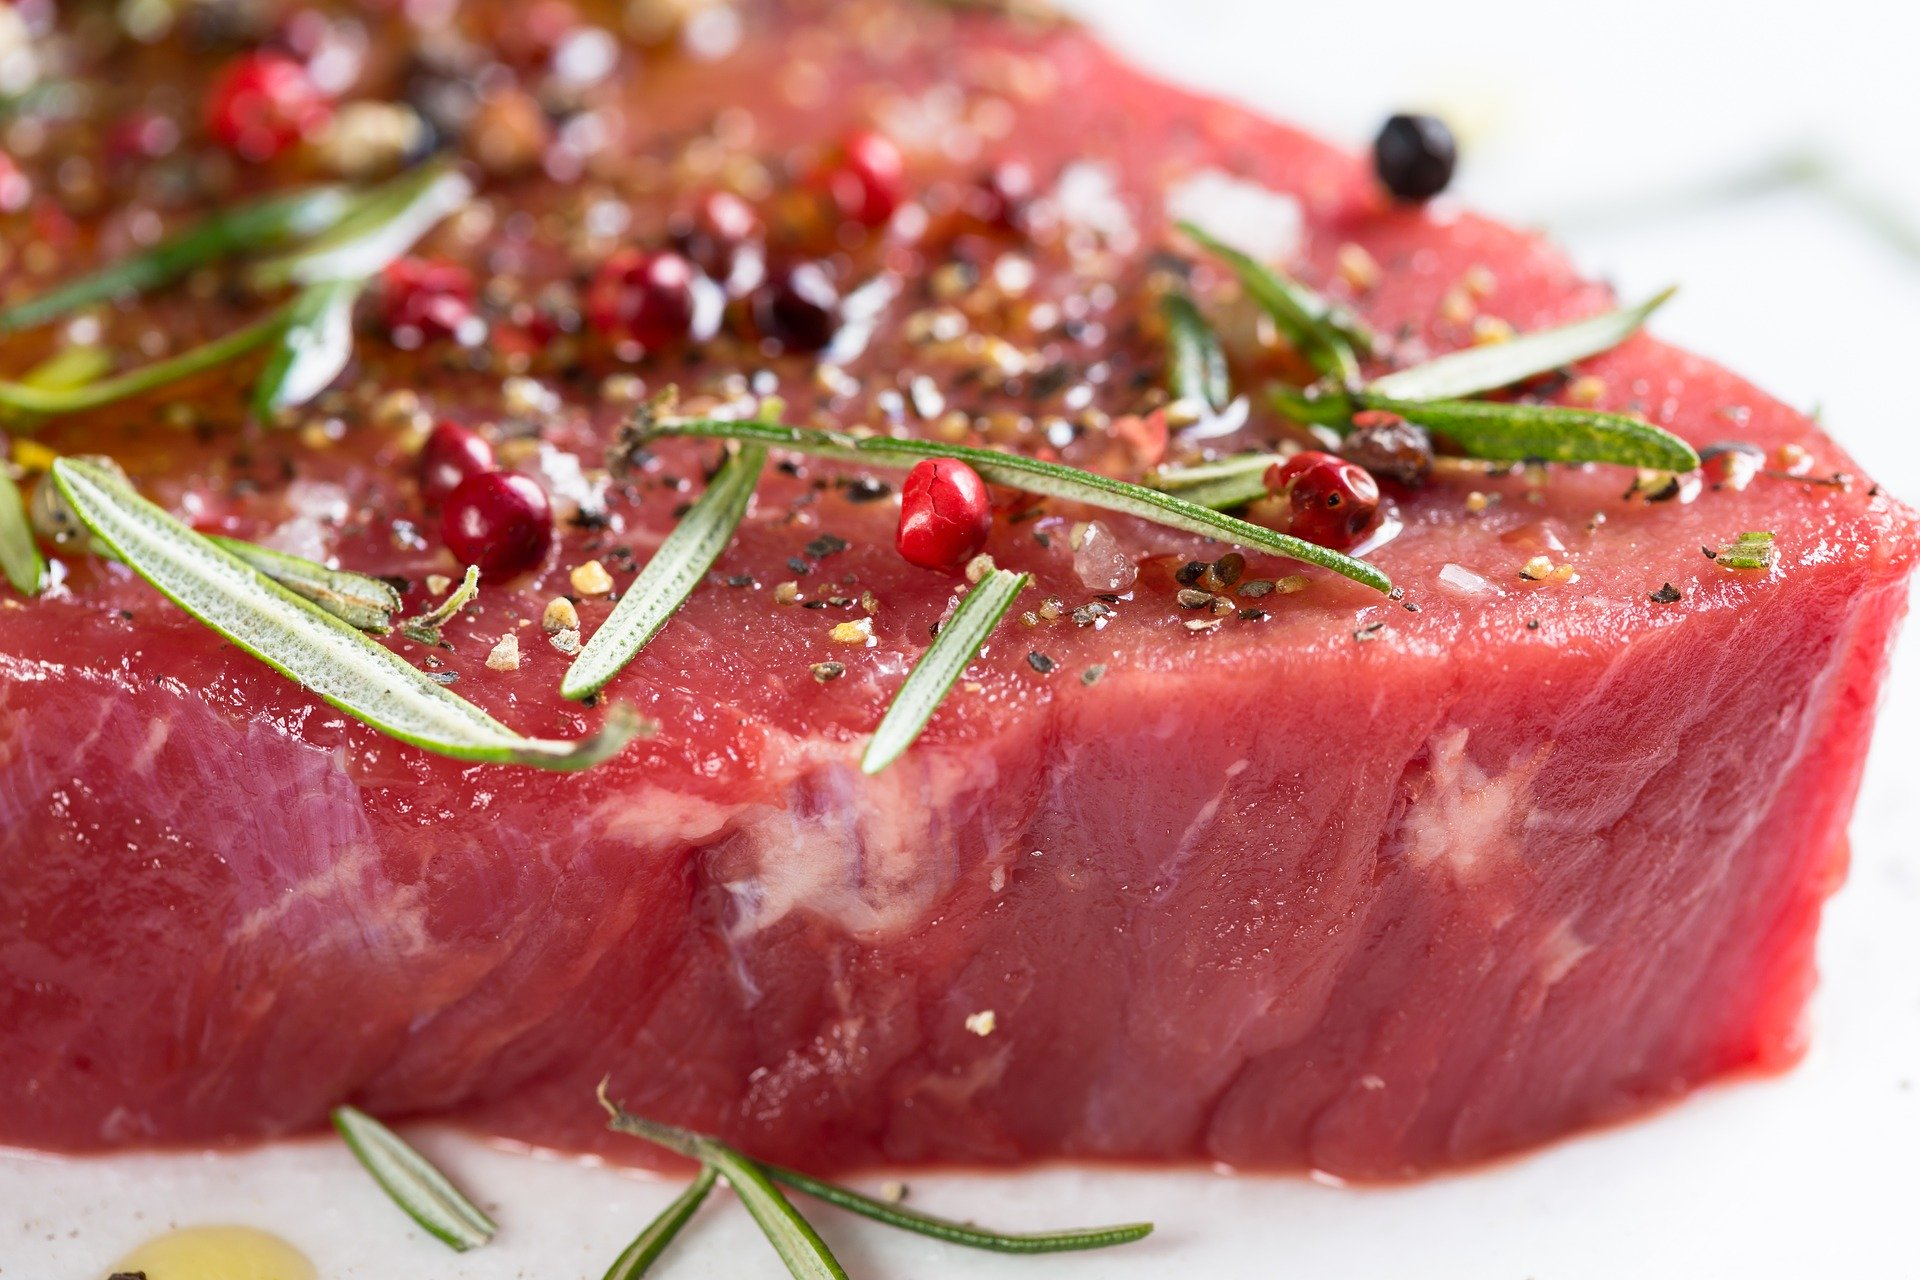 Know De Facts Before Deciding. Do You Know What Contains A Piece Of Red Meat?